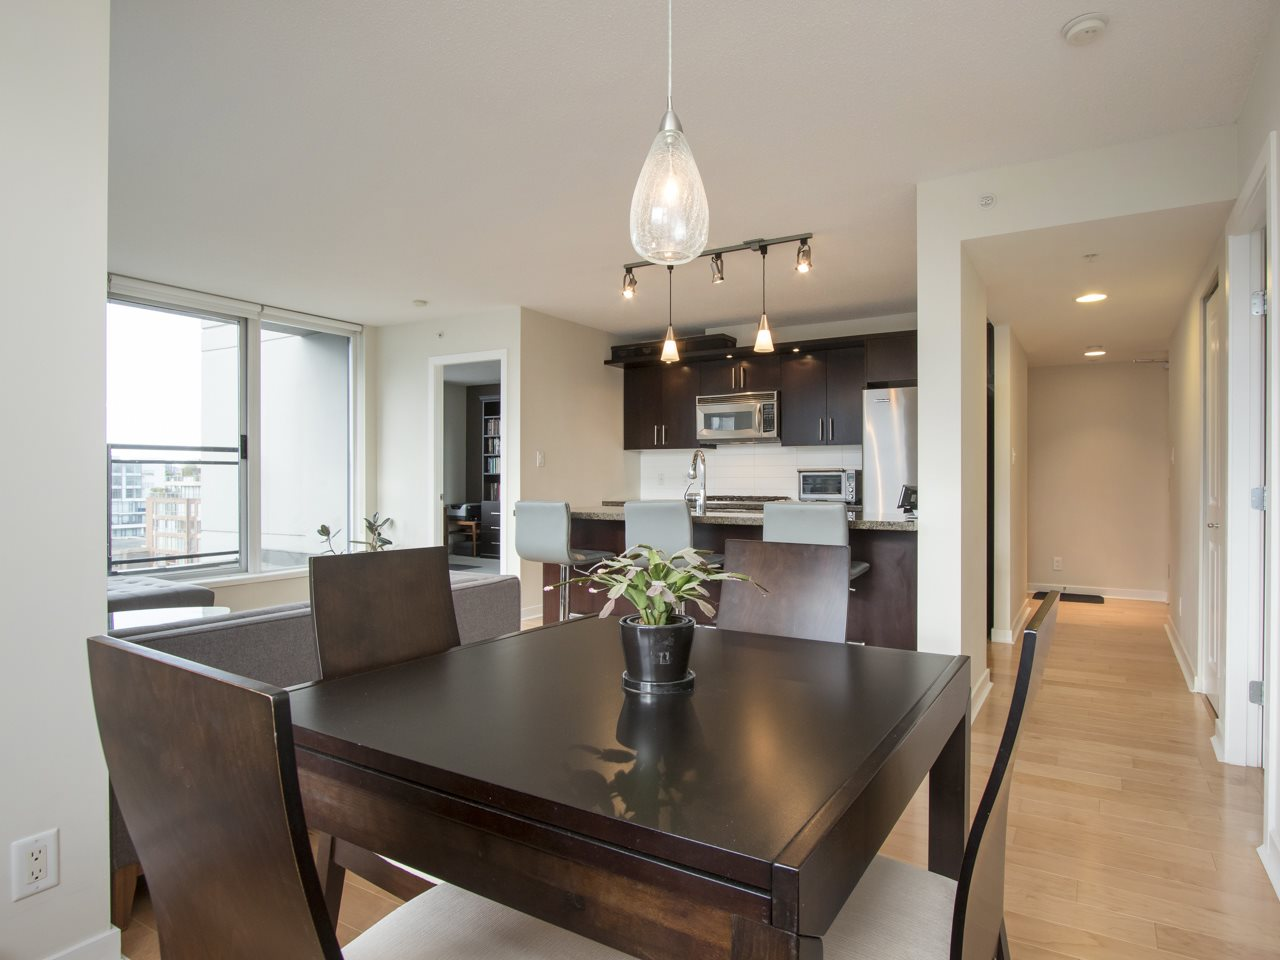 Photo 10: 1002 1650 W 7TH AVENUE in Vancouver: Fairview VW Condo for sale (Vancouver West)  : MLS® # R2022214